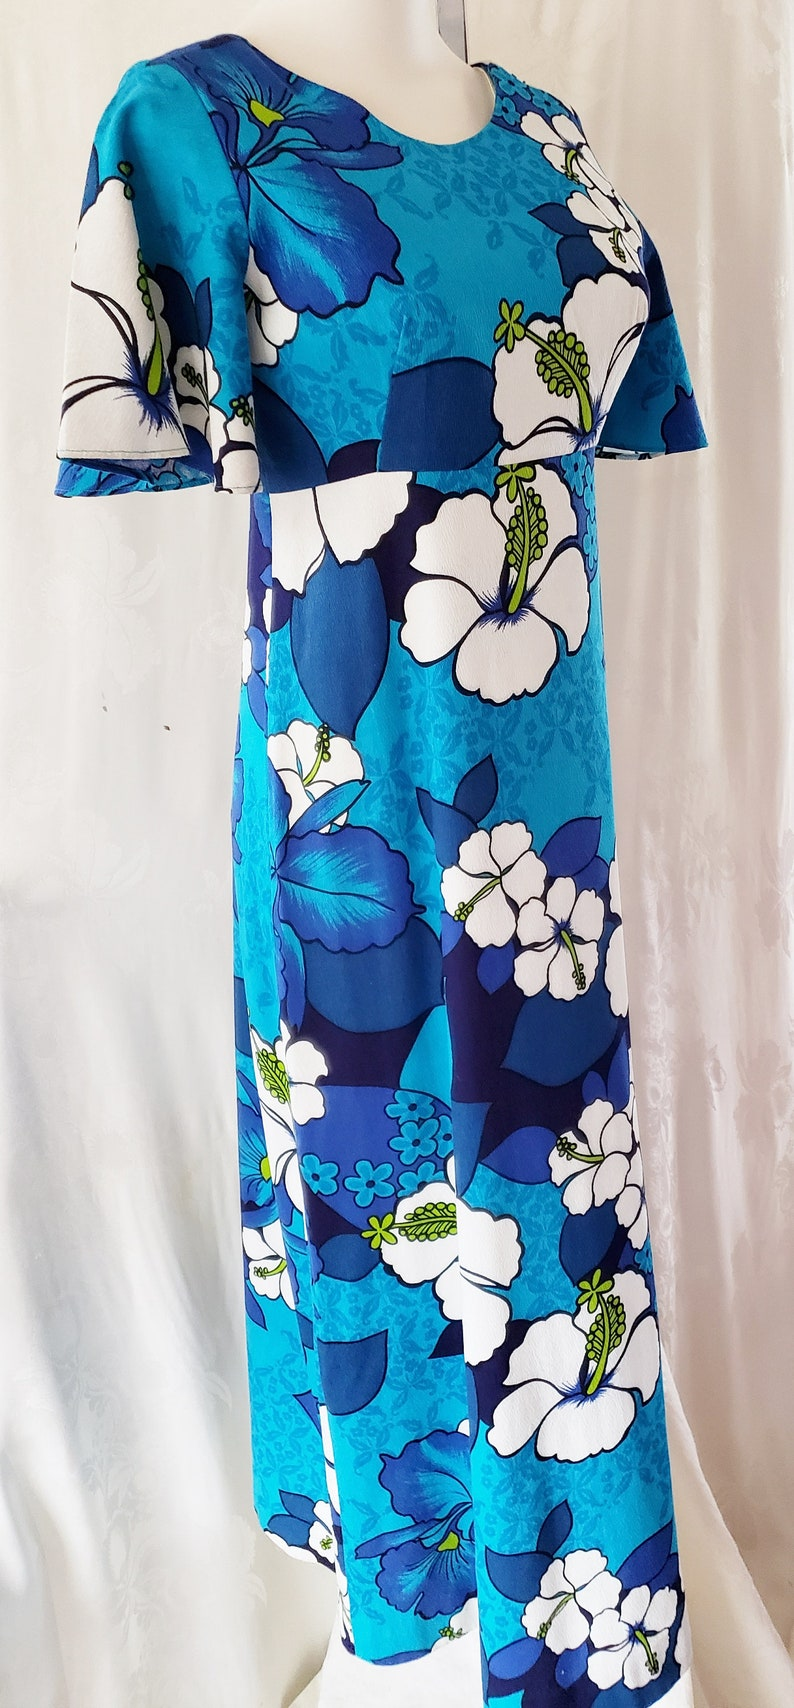 500 Vintage Style Dresses for Sale | Vintage Inspired Dresses ALOHA from Honolulu....Gorgeous 1960s Hawaiian Dress SophisticatedLaRue $64.00 AT vintagedancer.com